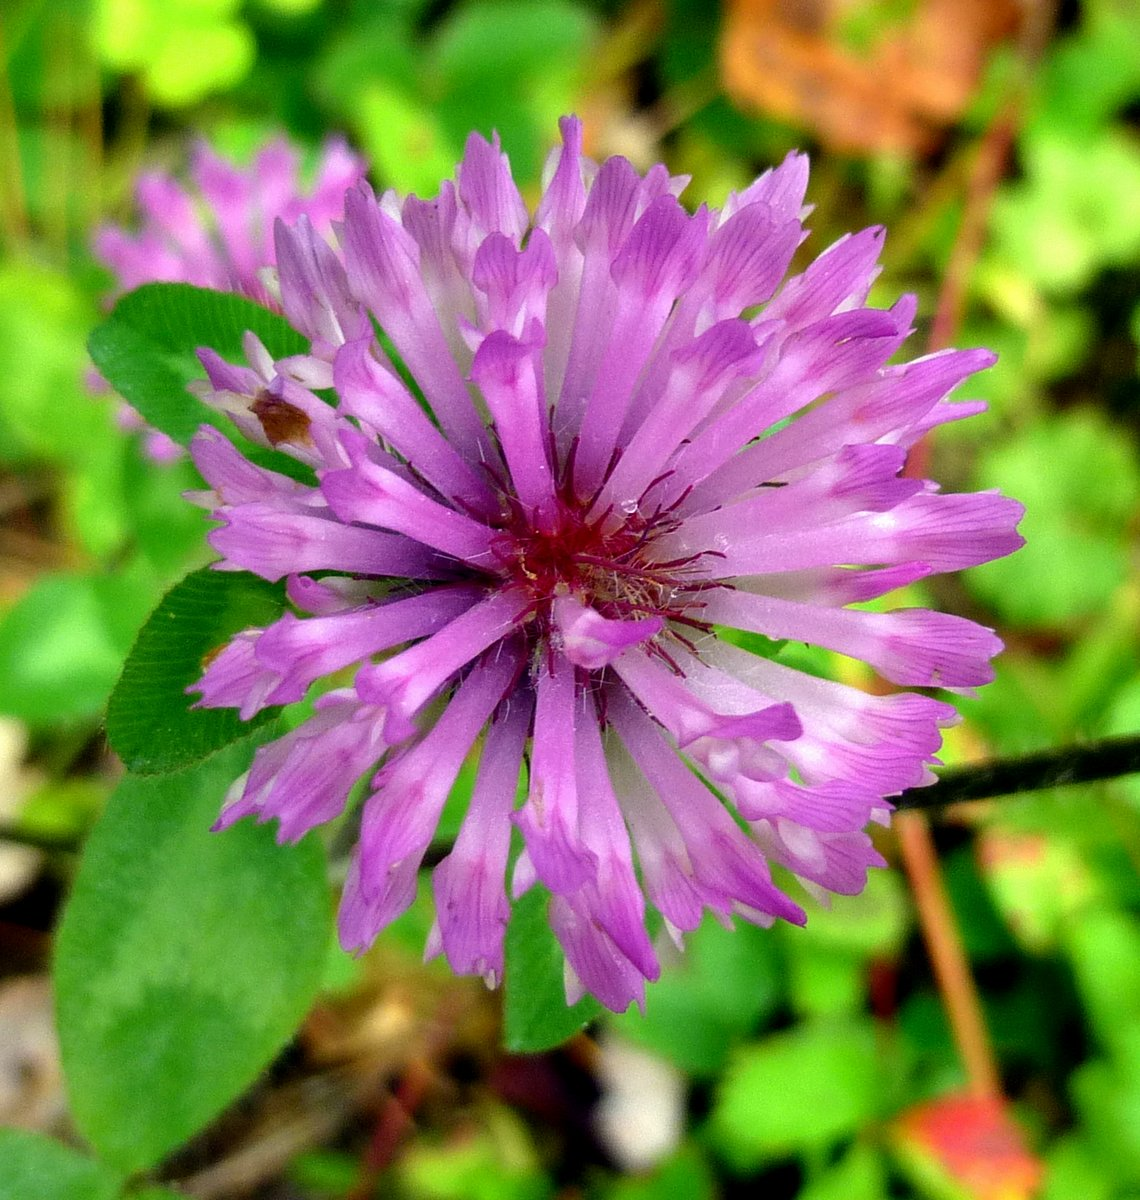 10. Red Clover